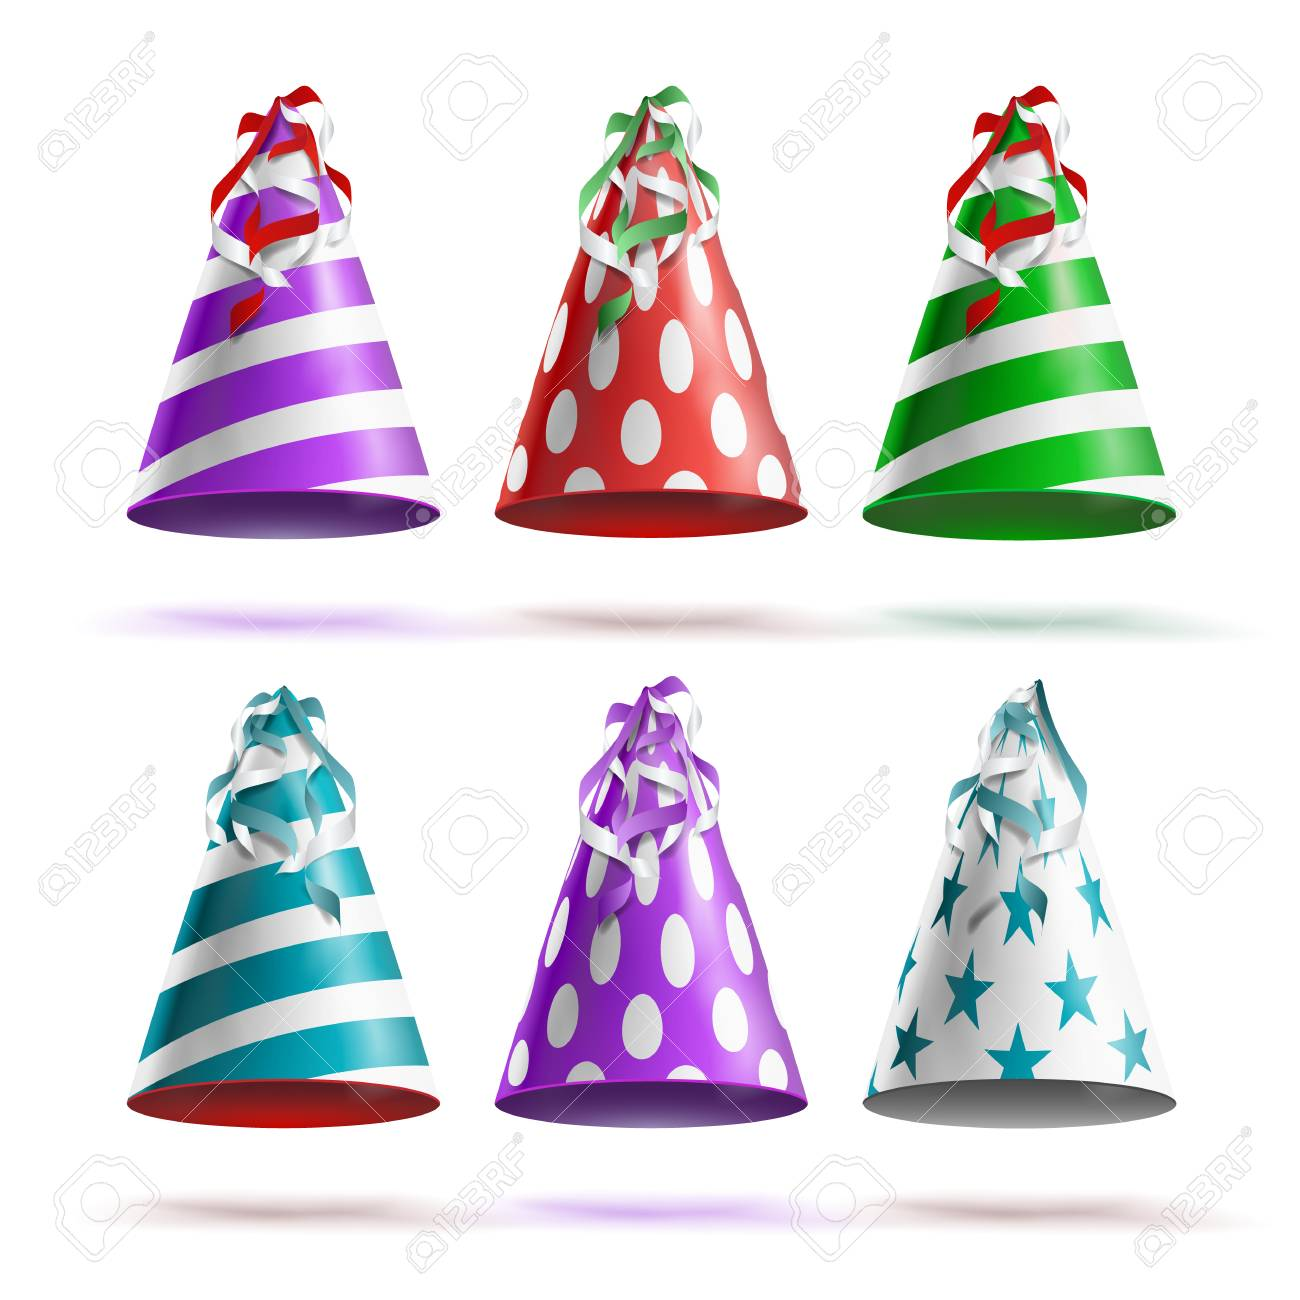 Party Hat Vector Classic Red White Striped Craft Birthday Isolated Illustration Stock